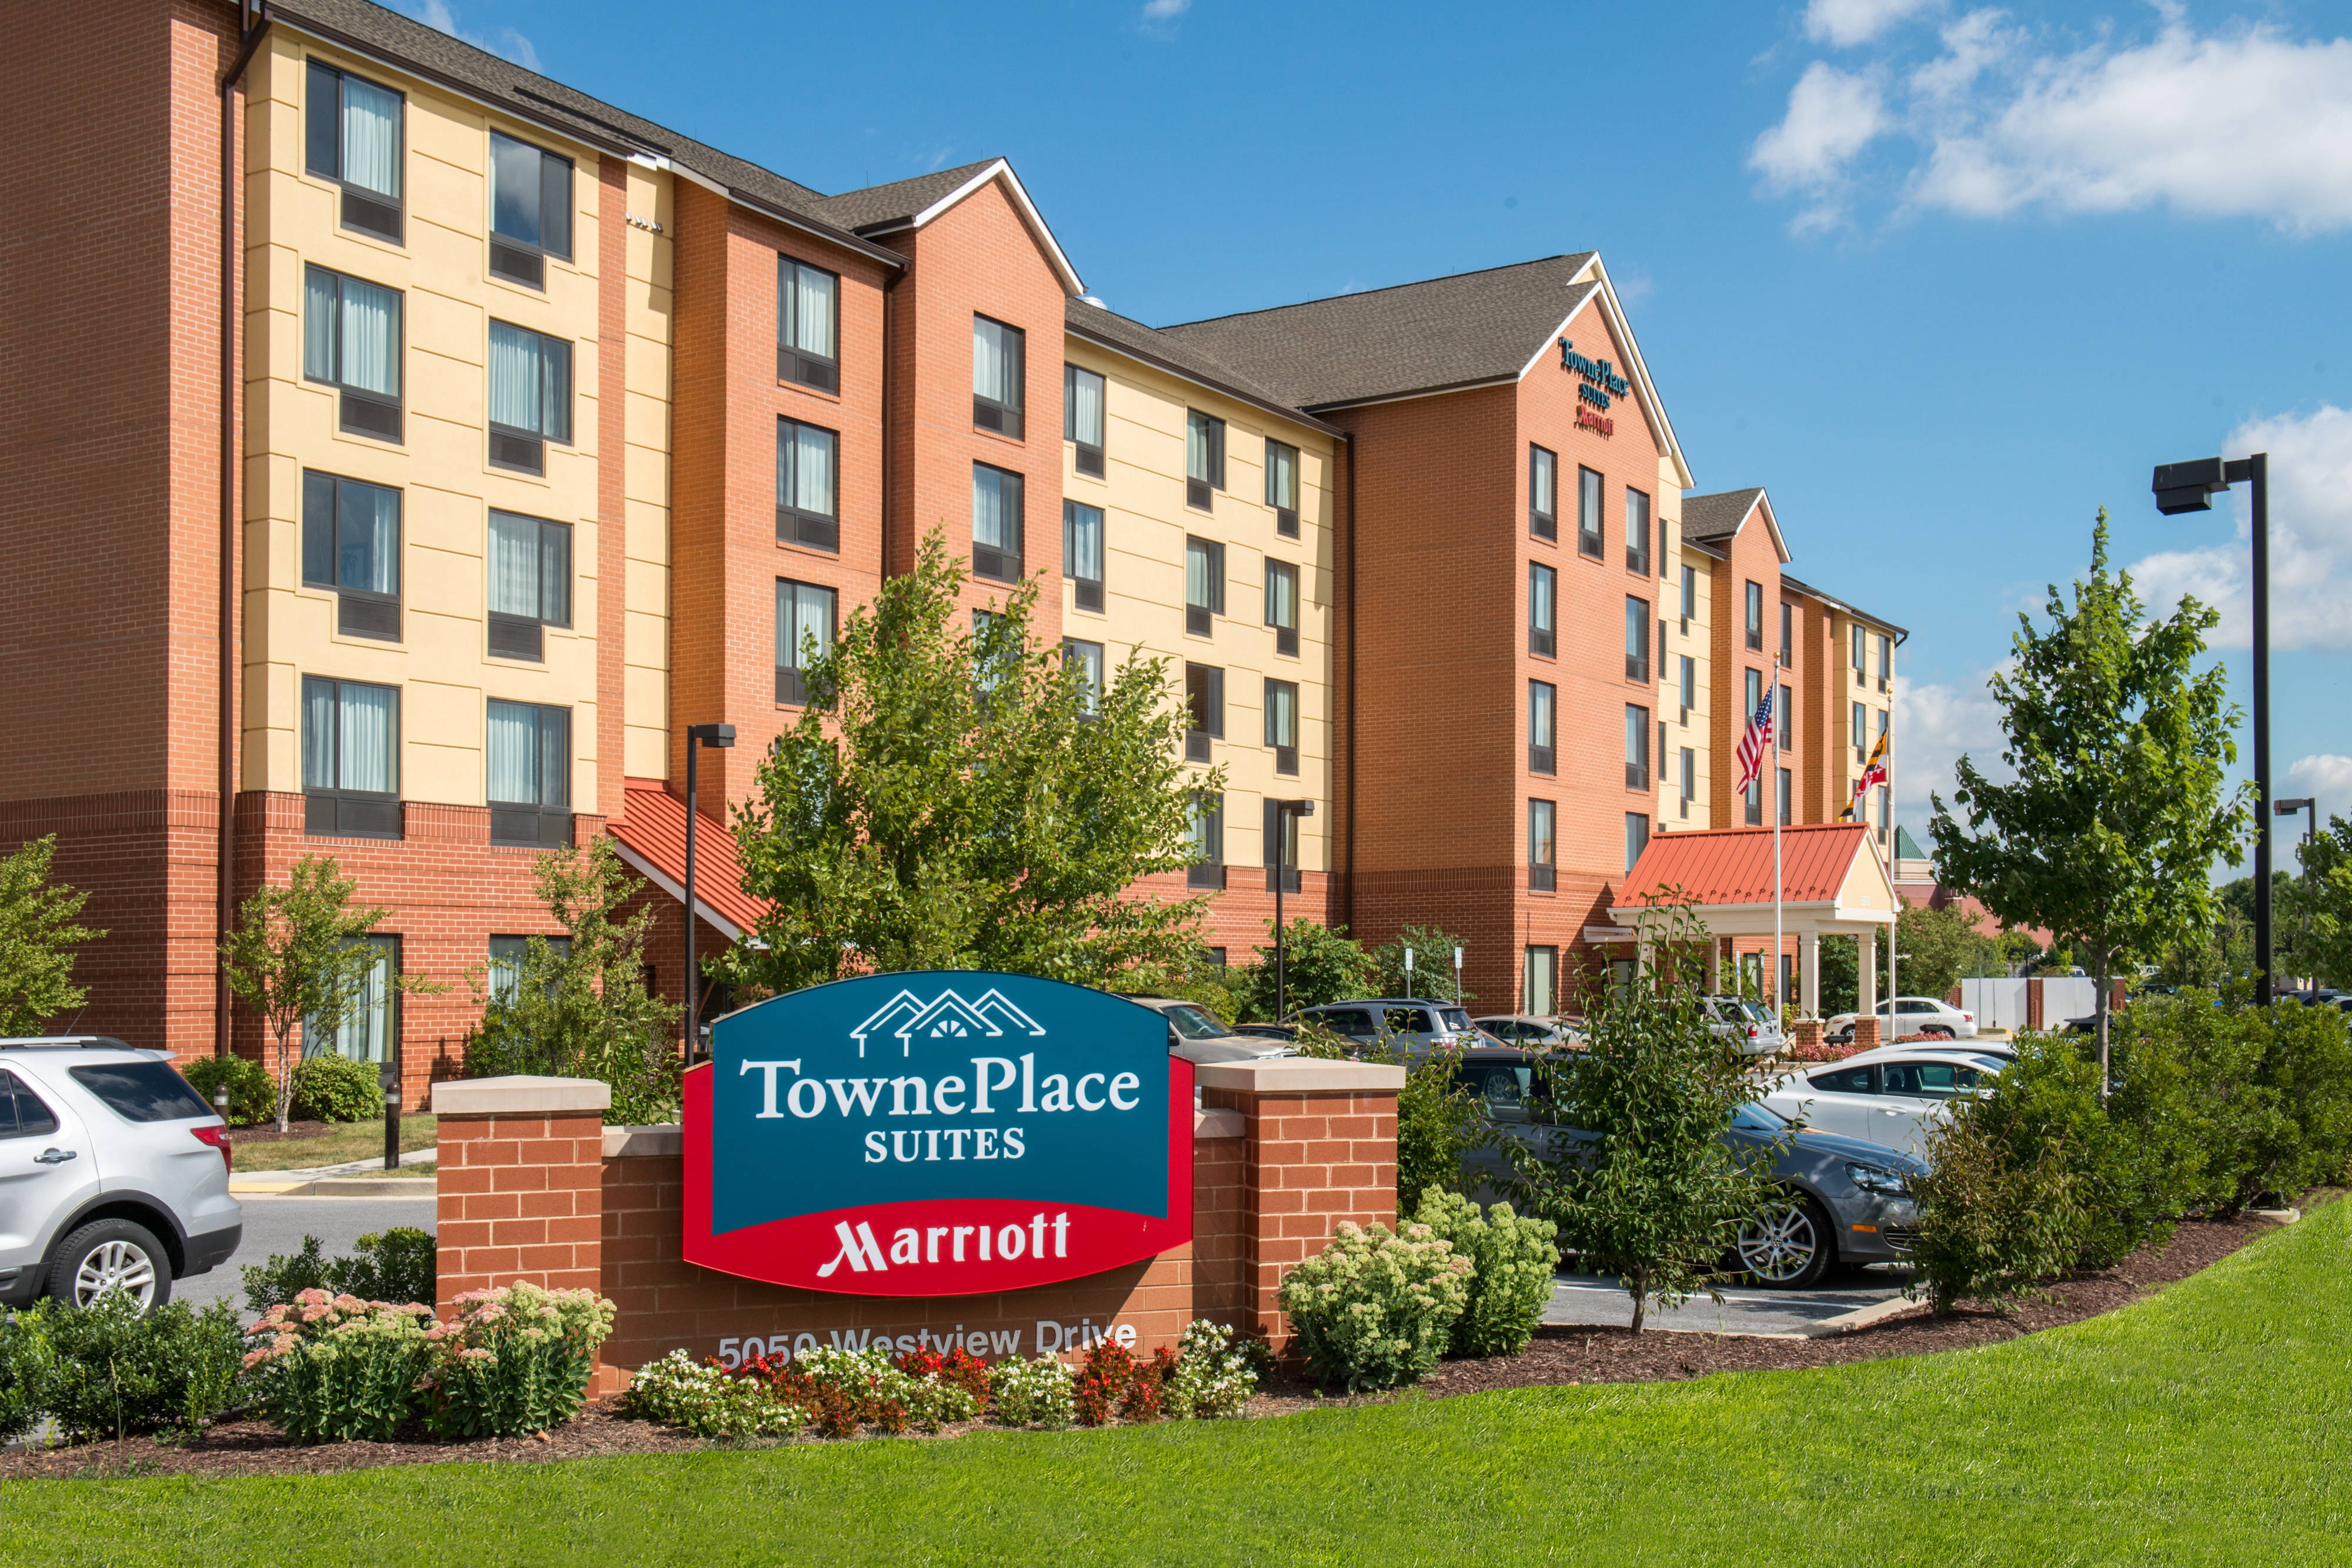 TownePlace Hotel Frederick Exterior